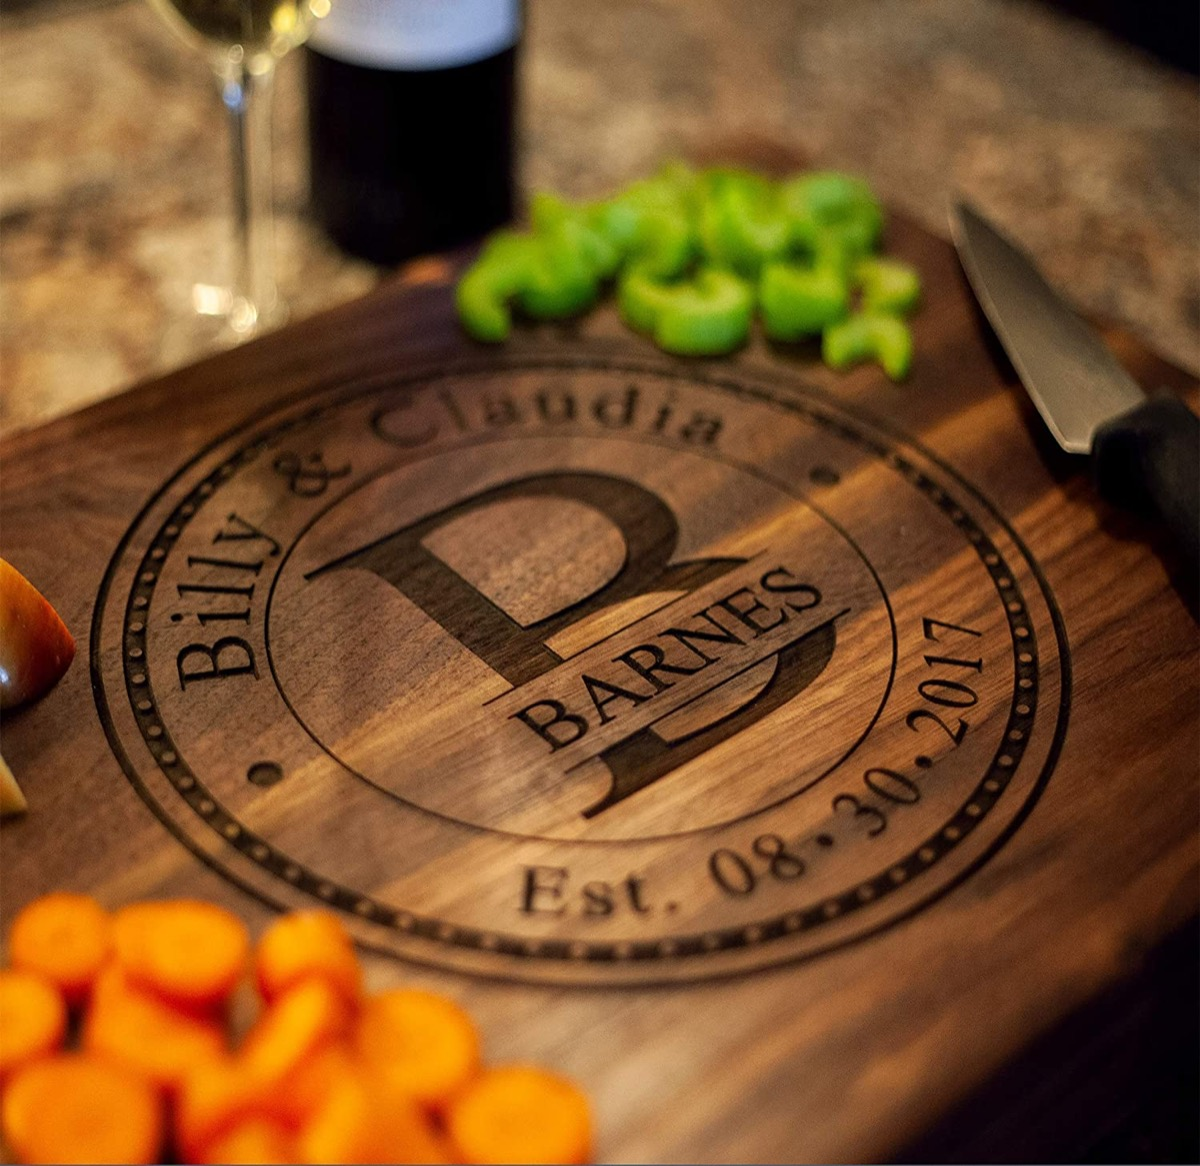 Cutting board engraved with couple's names